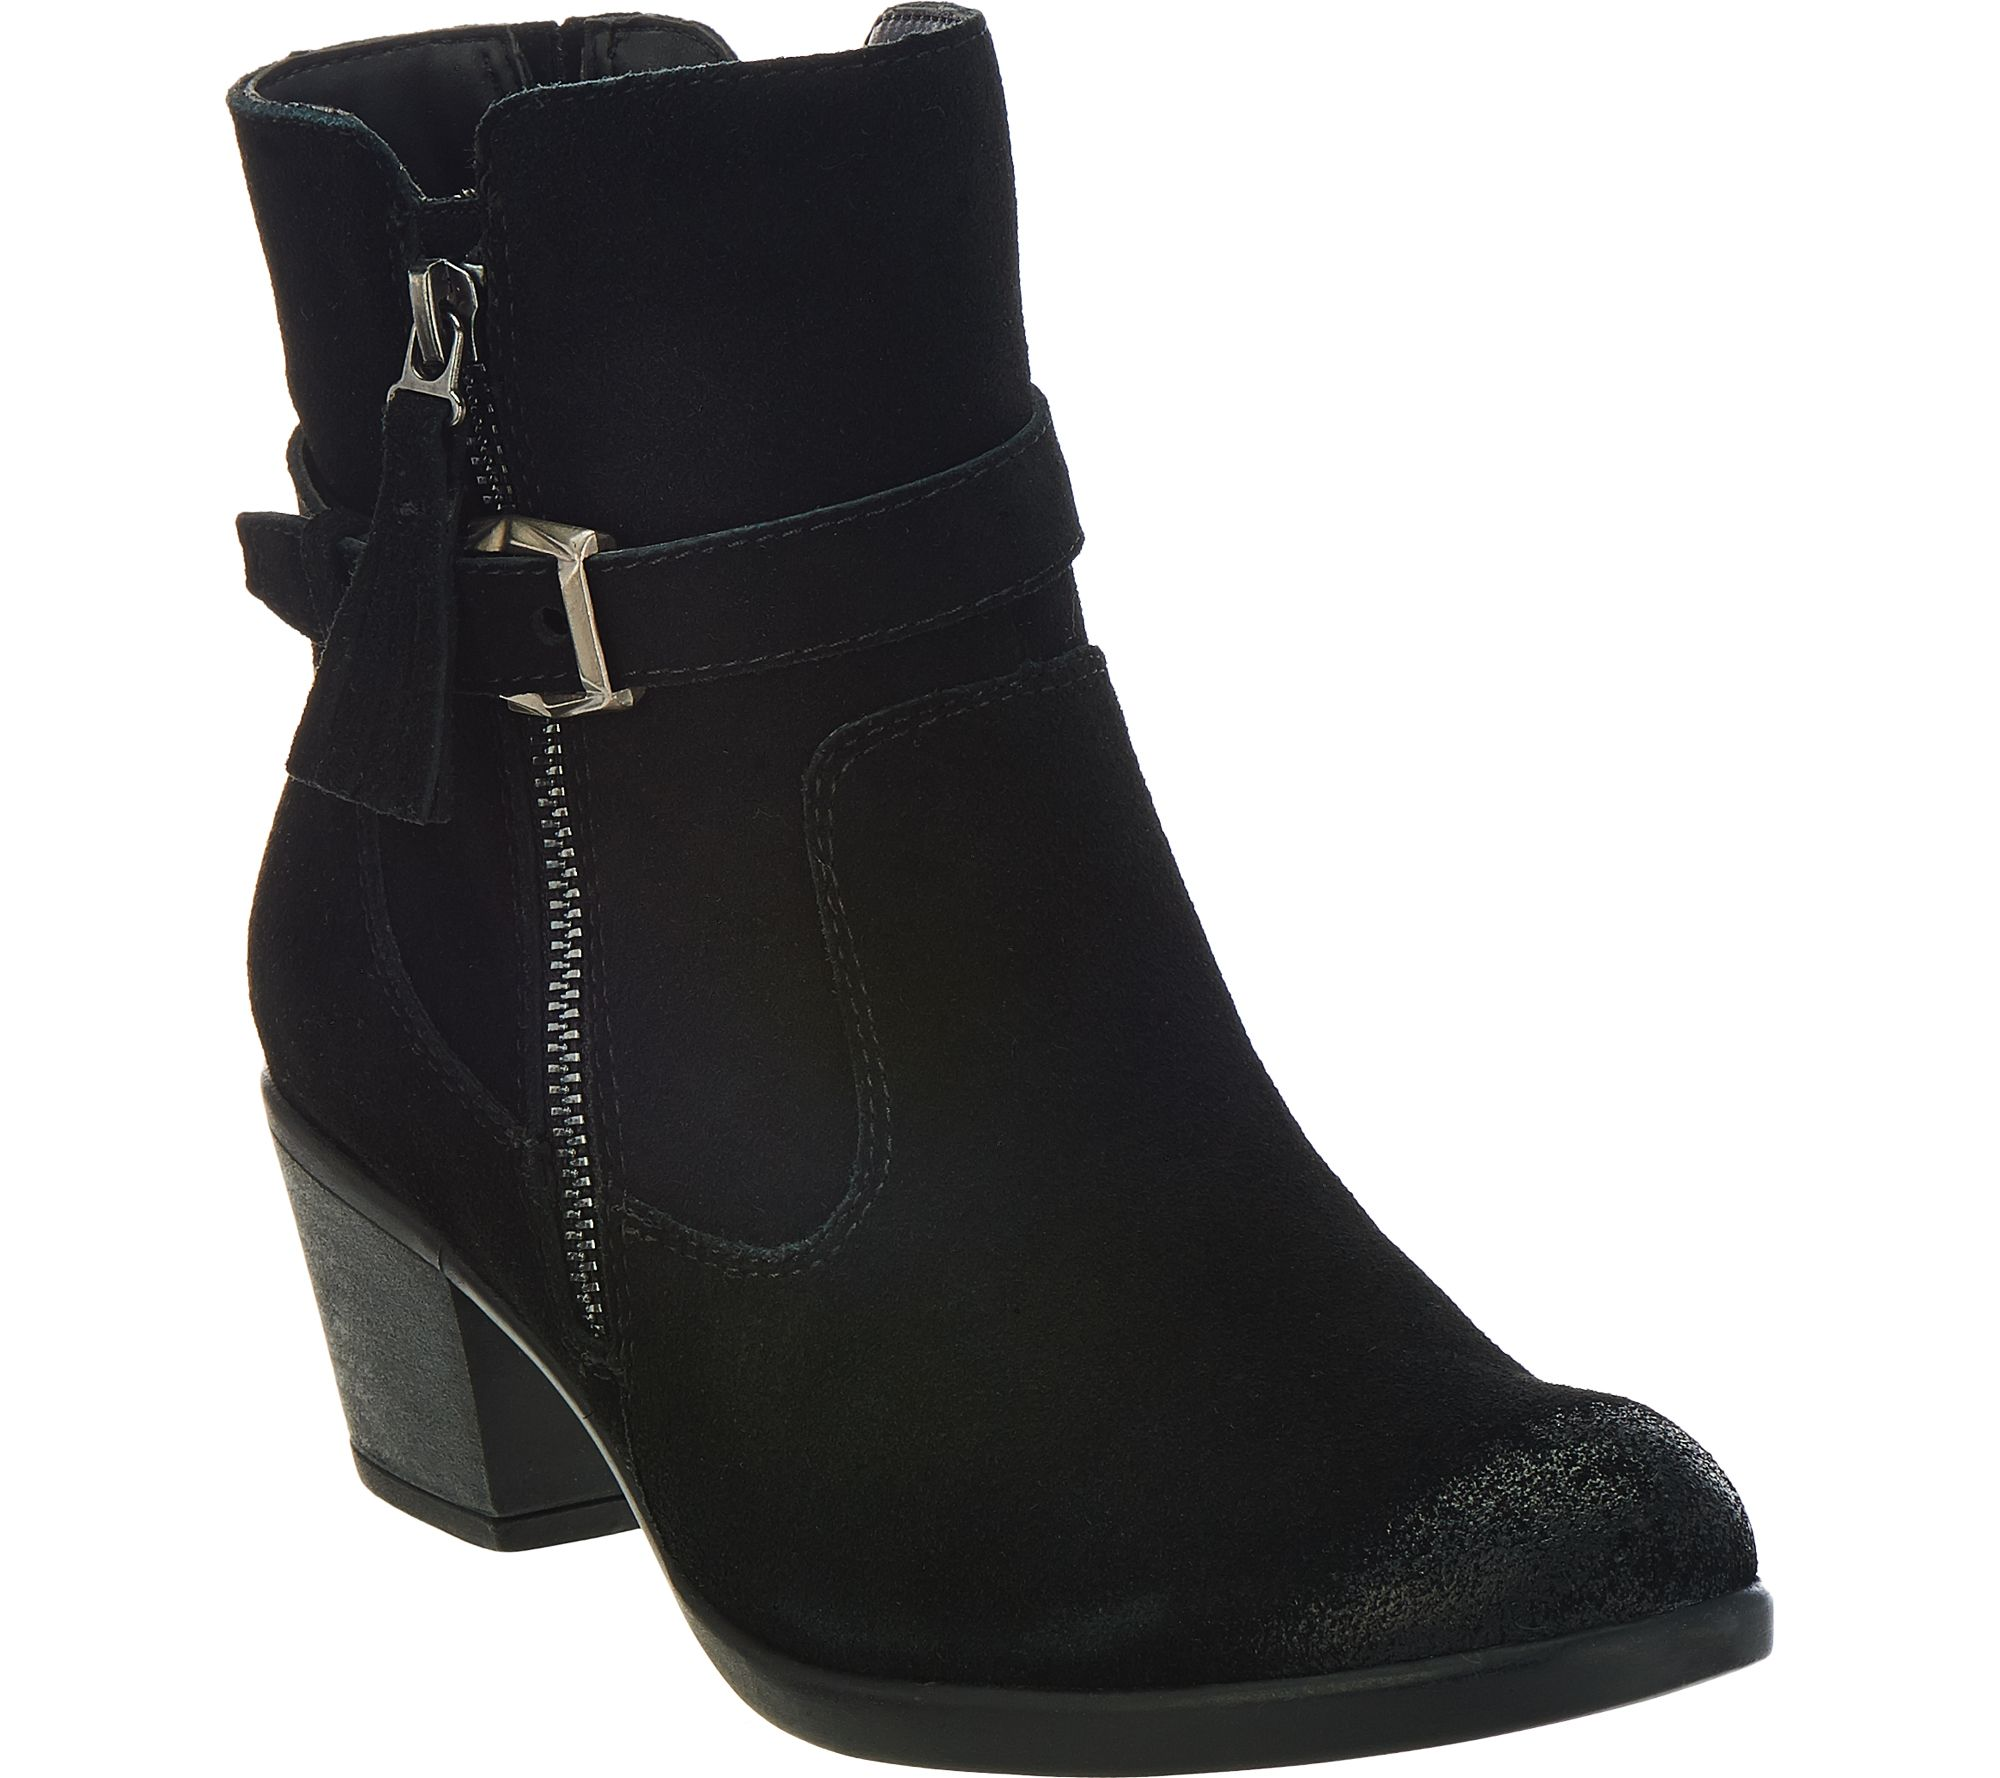 Earth Origins Suede Water Repellent Ankle Boots  Tori  Page 1  QVCcom